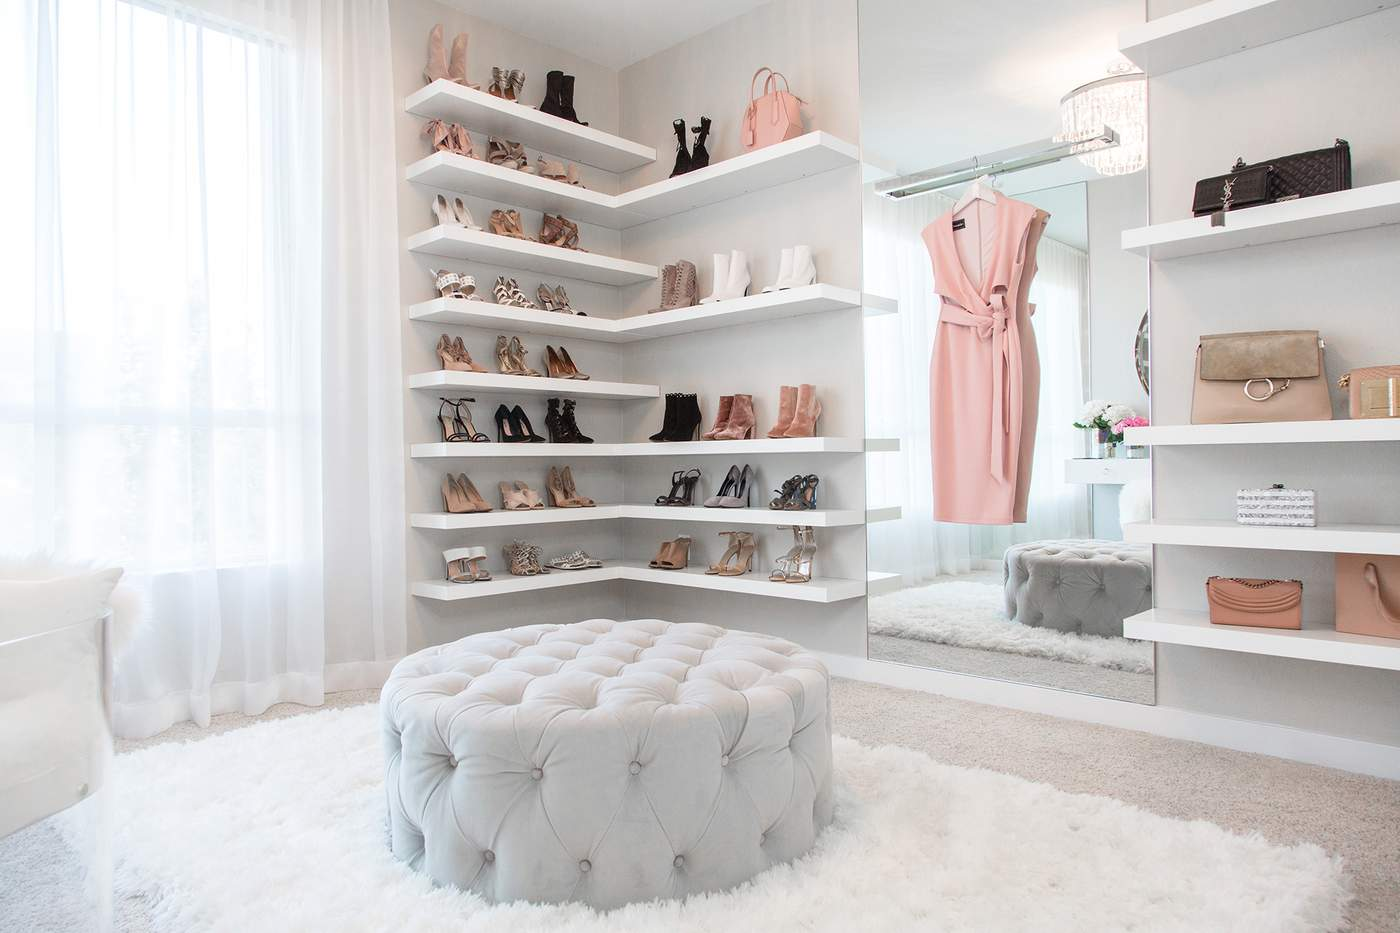 This Walk In Closet Designed By Lisa Adams Of LA Closet Design Features A  Chic Staging Area Thatu0027s Social Media Ready. Photography Courtesy Of LA  Closet ...